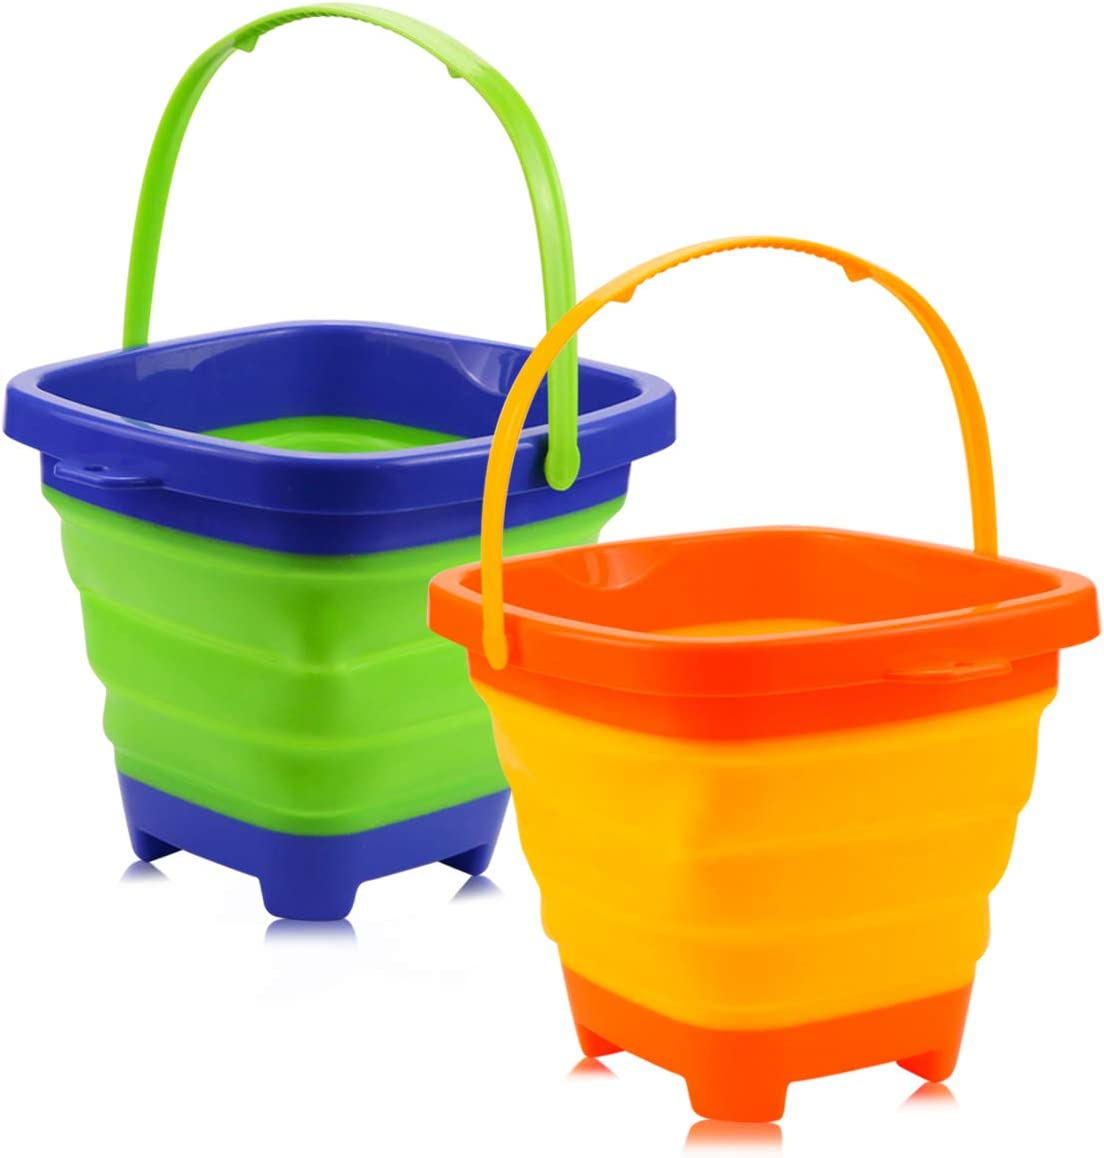 butterfunny 2 Pack 2L Square Foldable Buckets, Foldable Silicone Pail Buckets Sand Buckets, Silicone Collapsible Bucket for Kids Beach Play, Water and Food Jug, Dog Bowls(Yellow and Greeen)